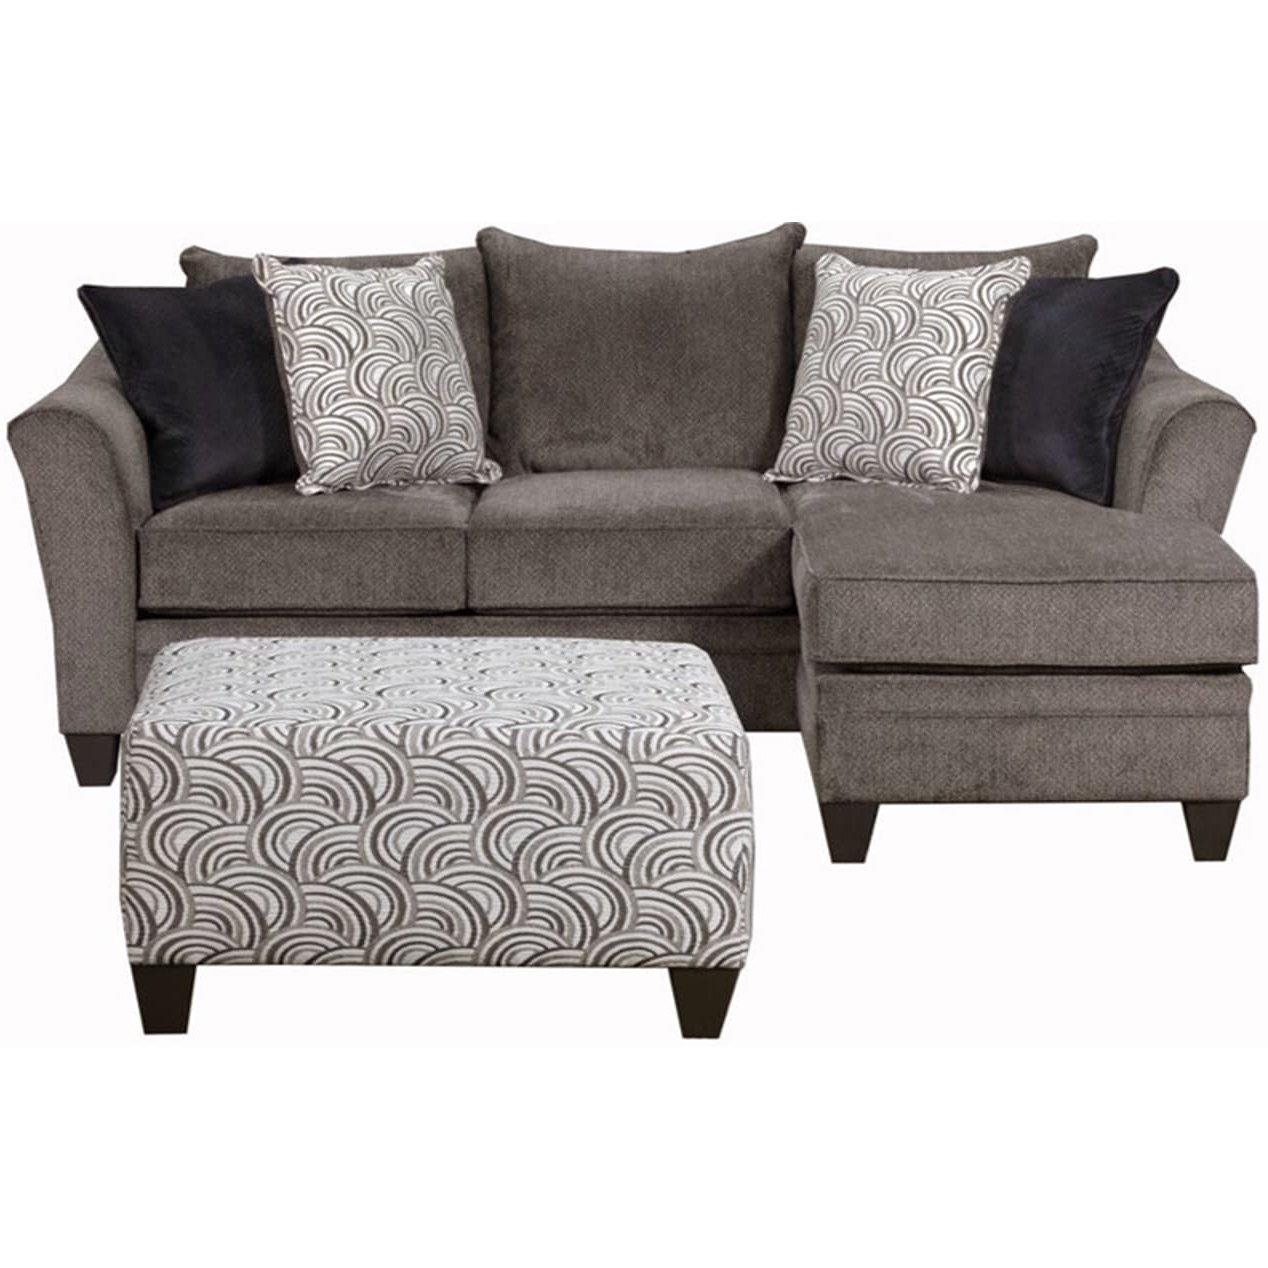 Preferred Simmons Chaise Sofas In Simmons Upholstery Albany Pewter Sofa Chaise – Free Shipping Today (View 8 of 20)